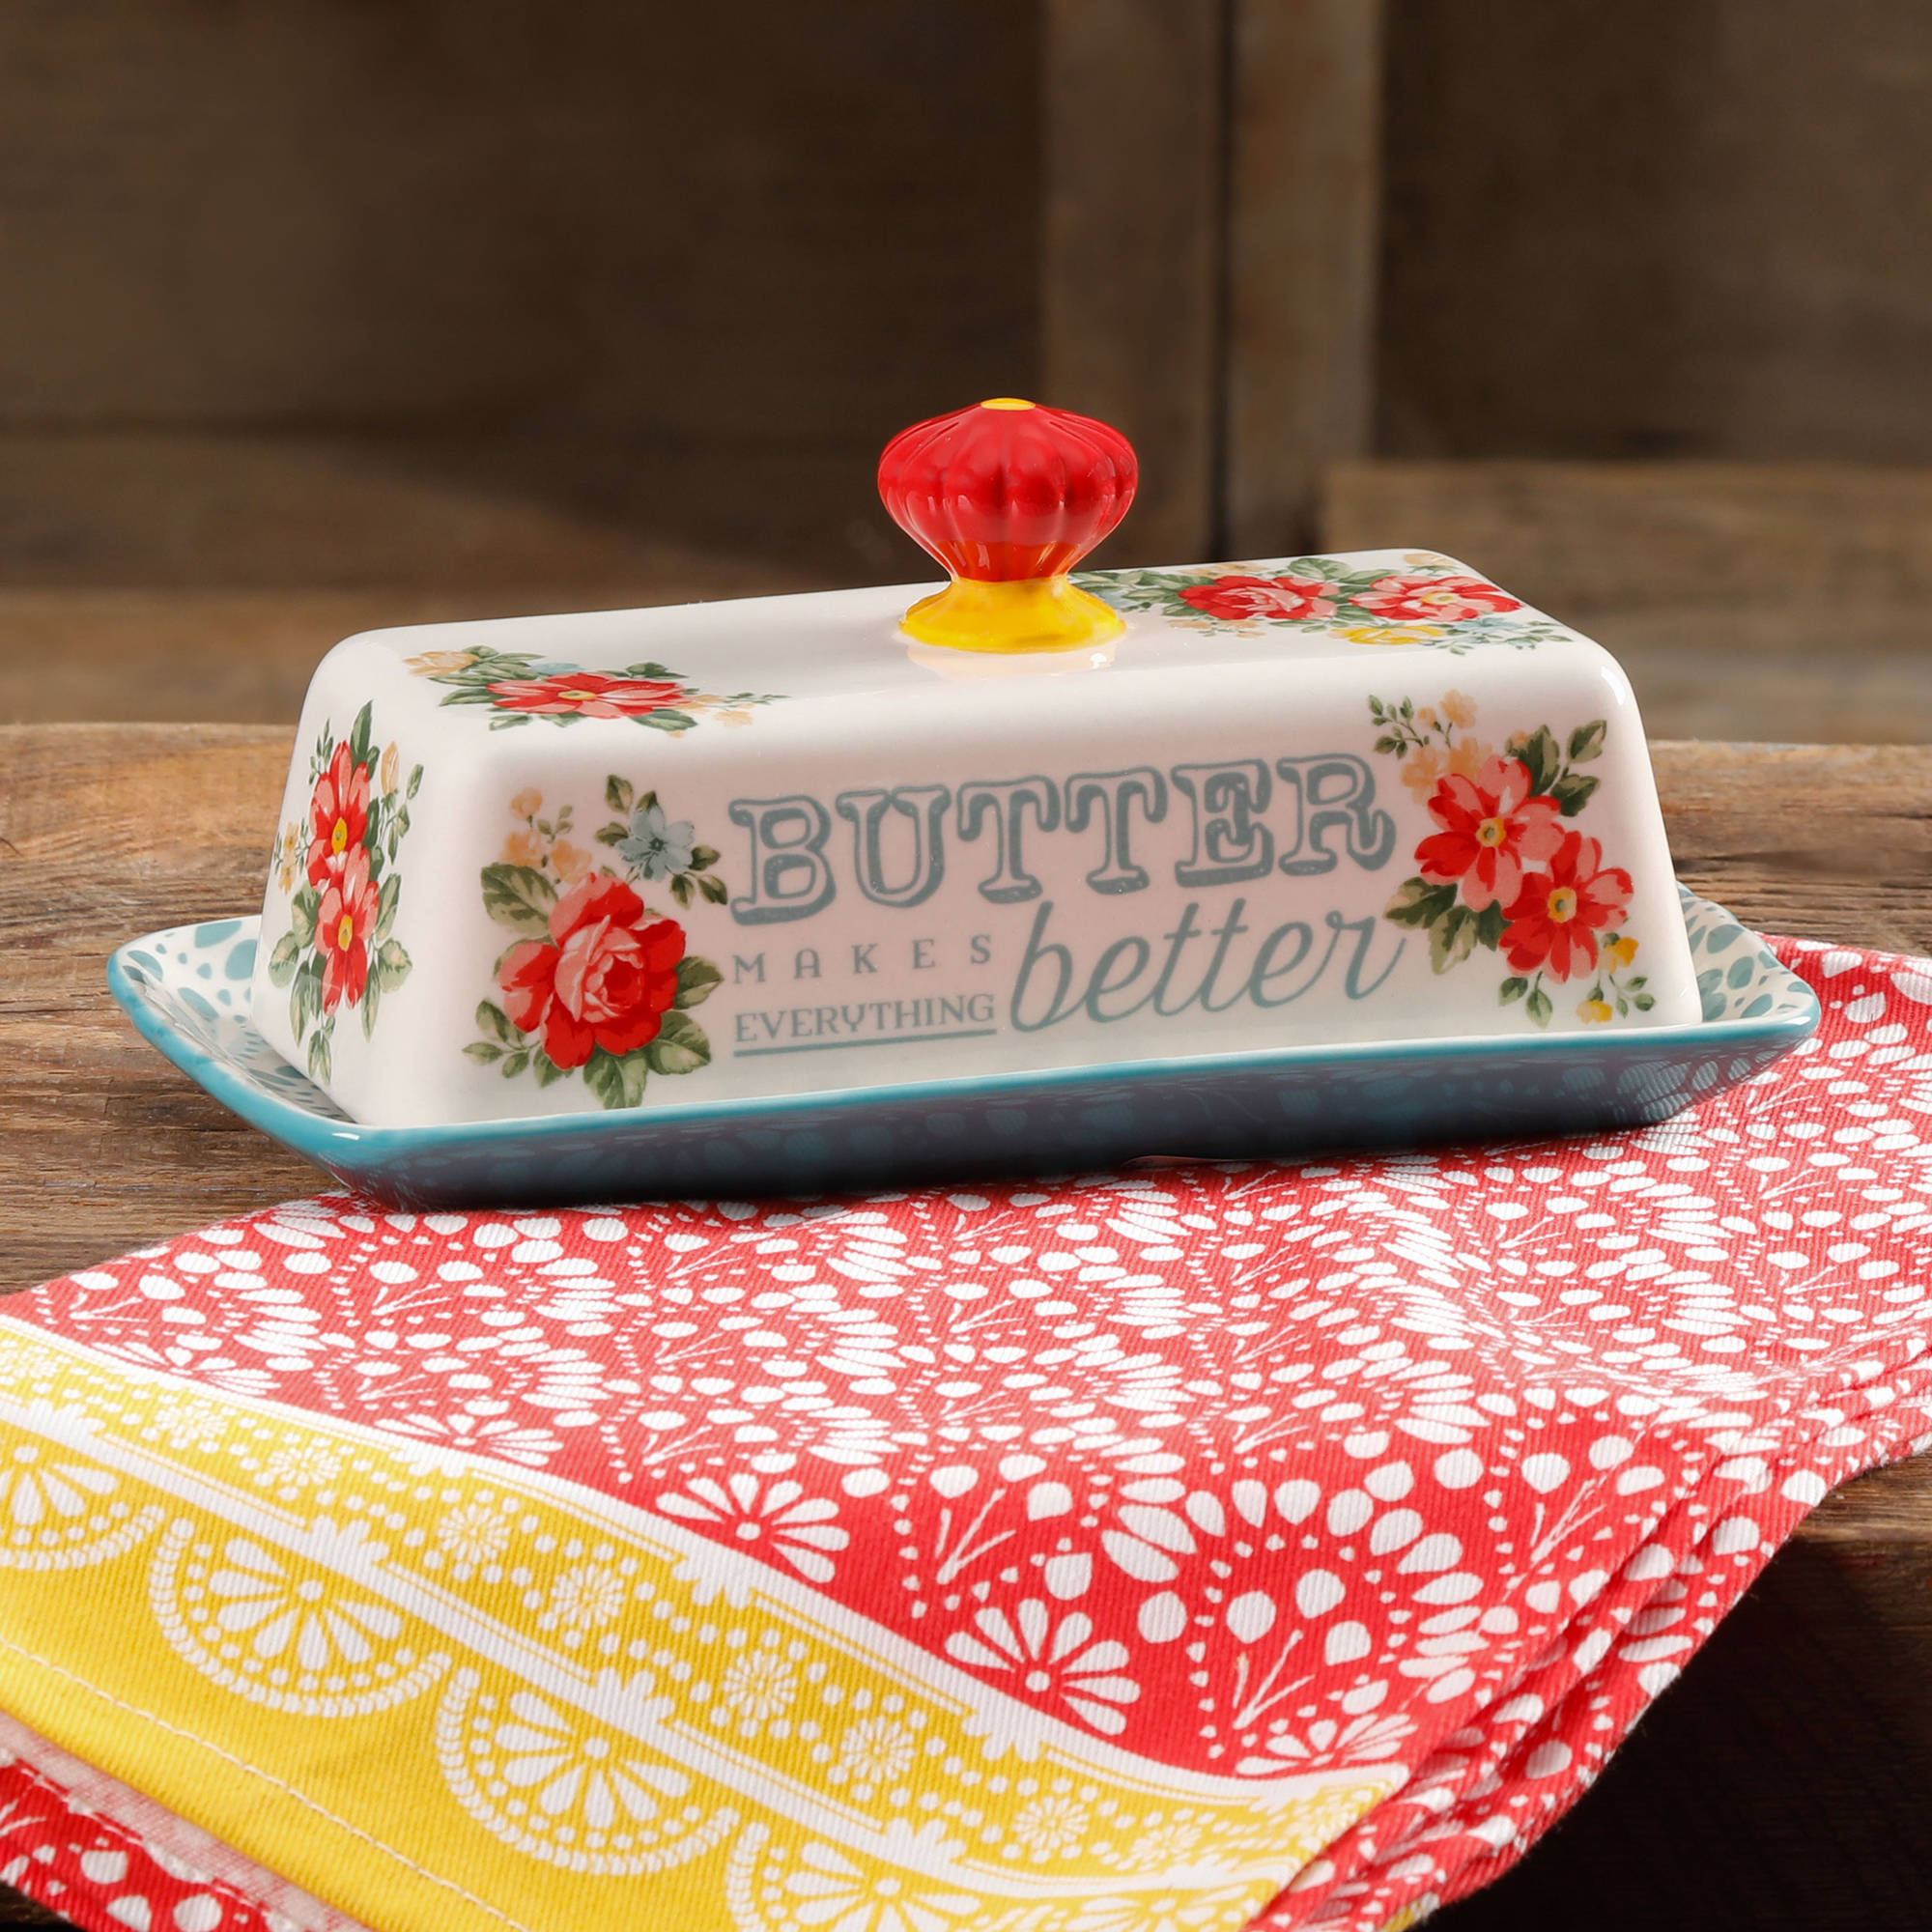 The Pioneer Woman Vintage Floral Teal Butter Dish